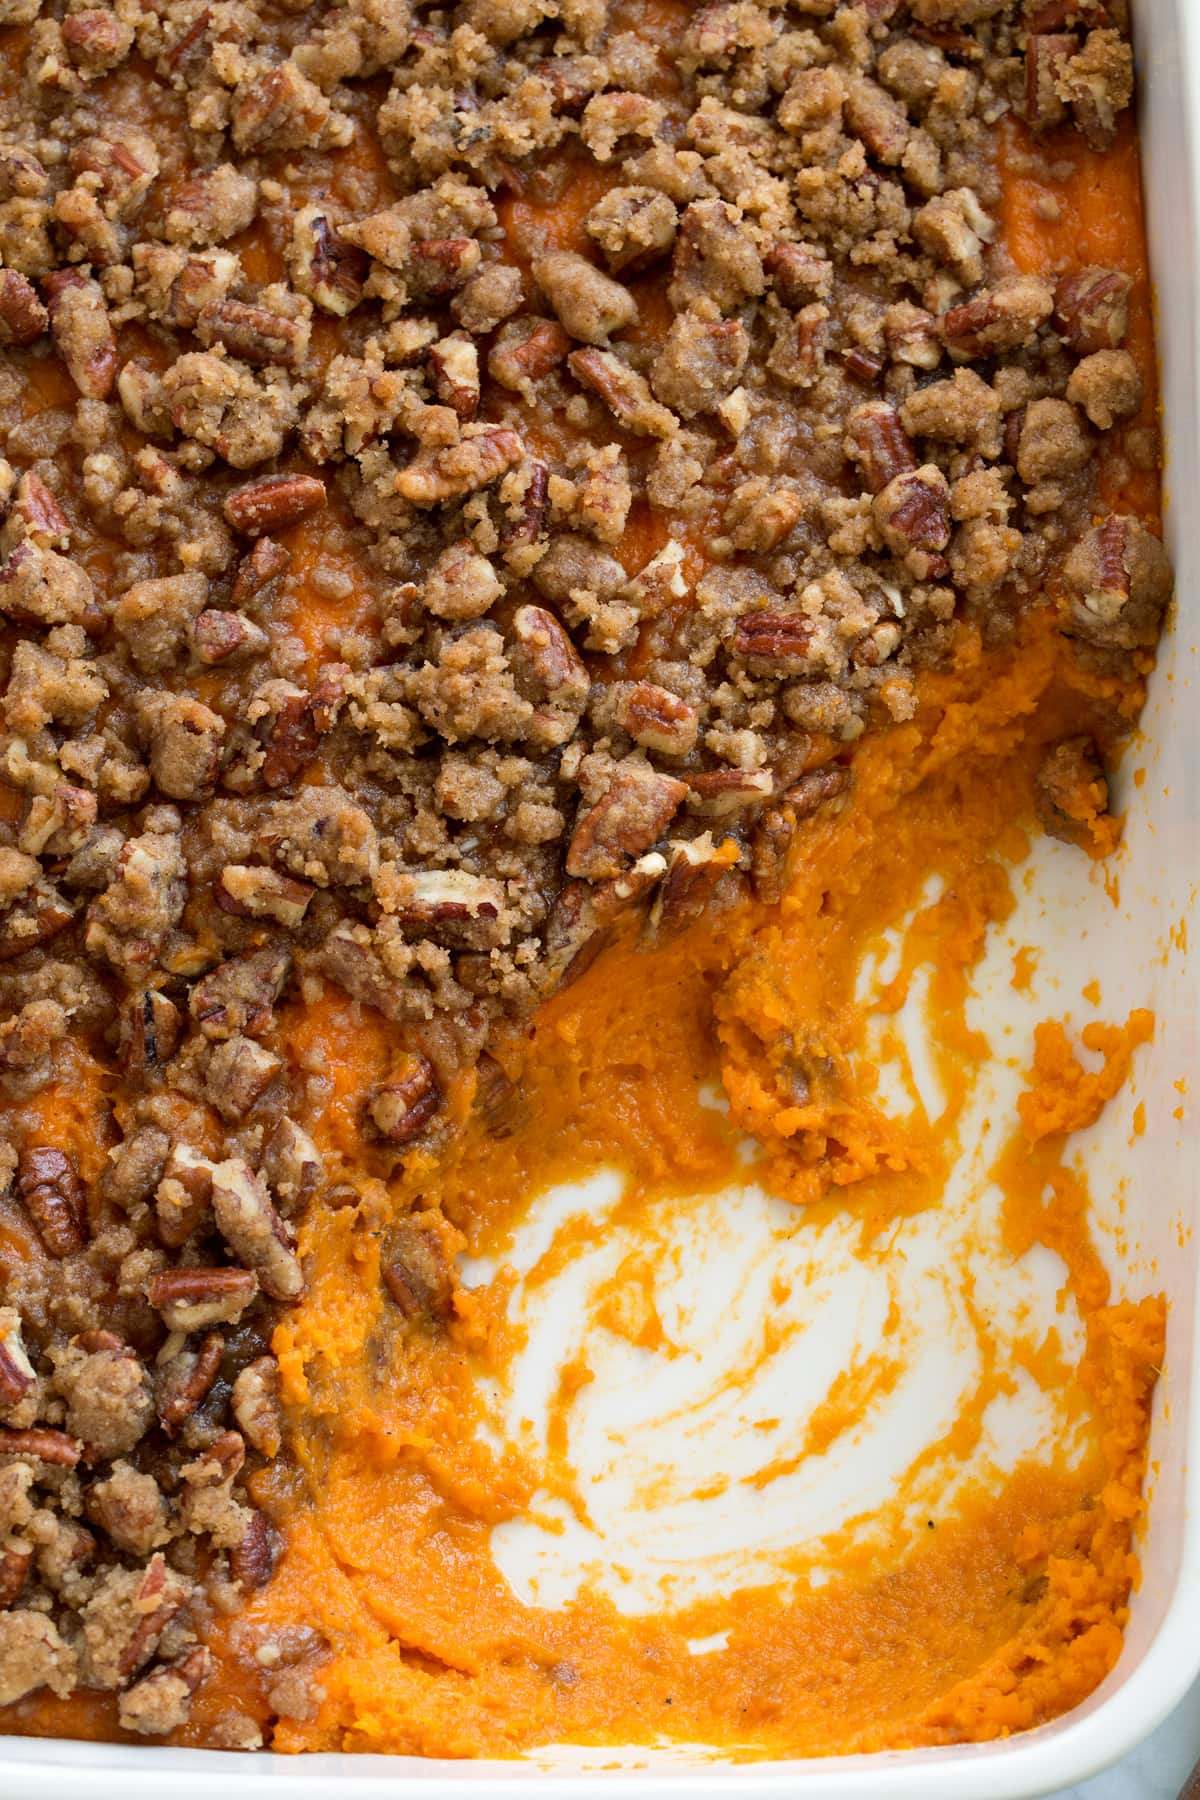 Overhead image of sweet potato casserole.